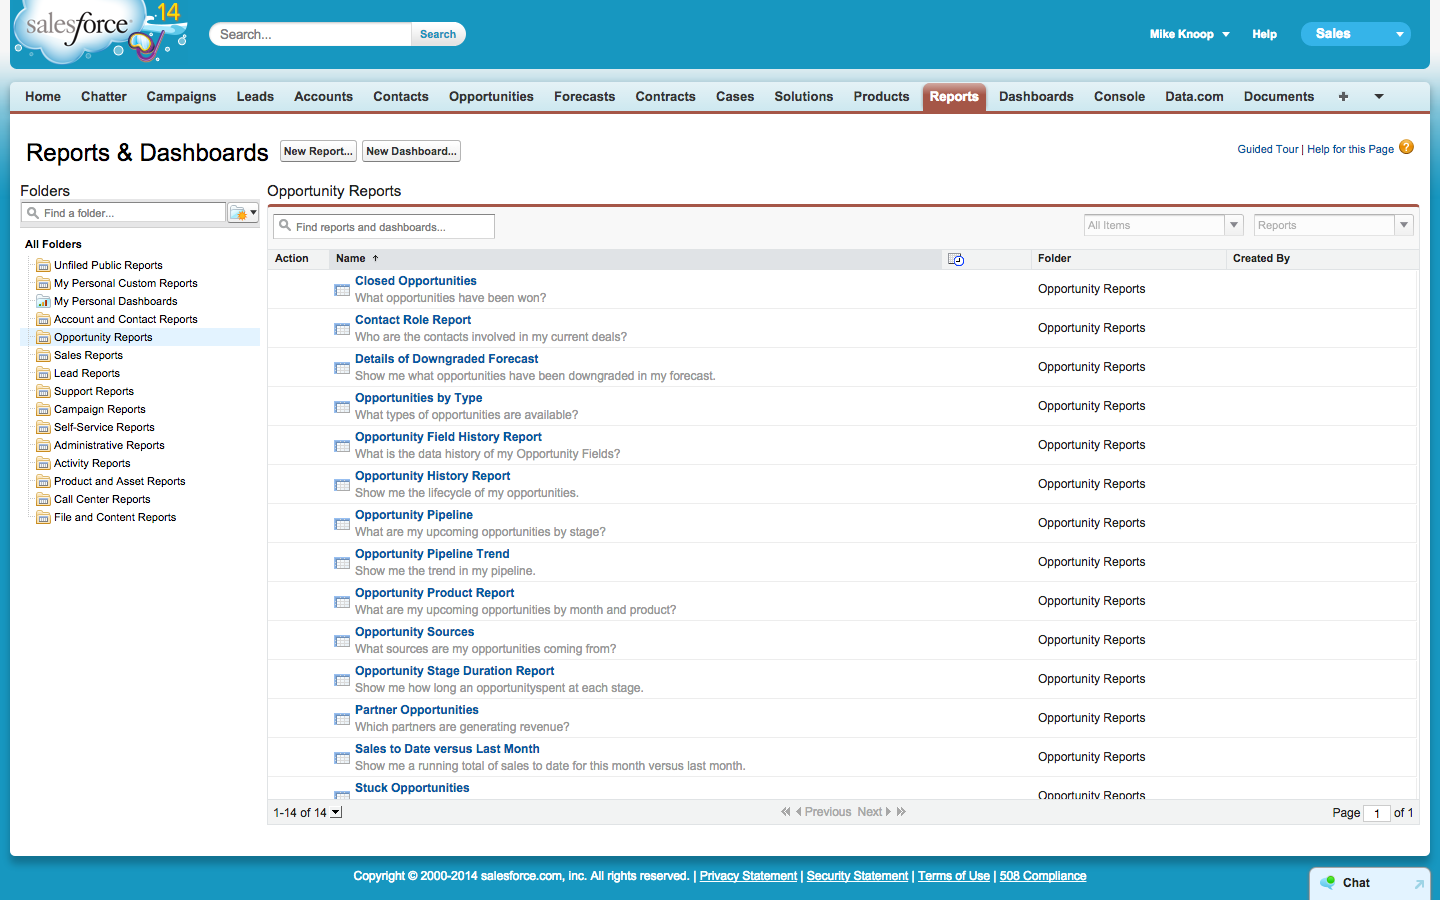 Salesforce: Features, Pricing, Alternatives, And More